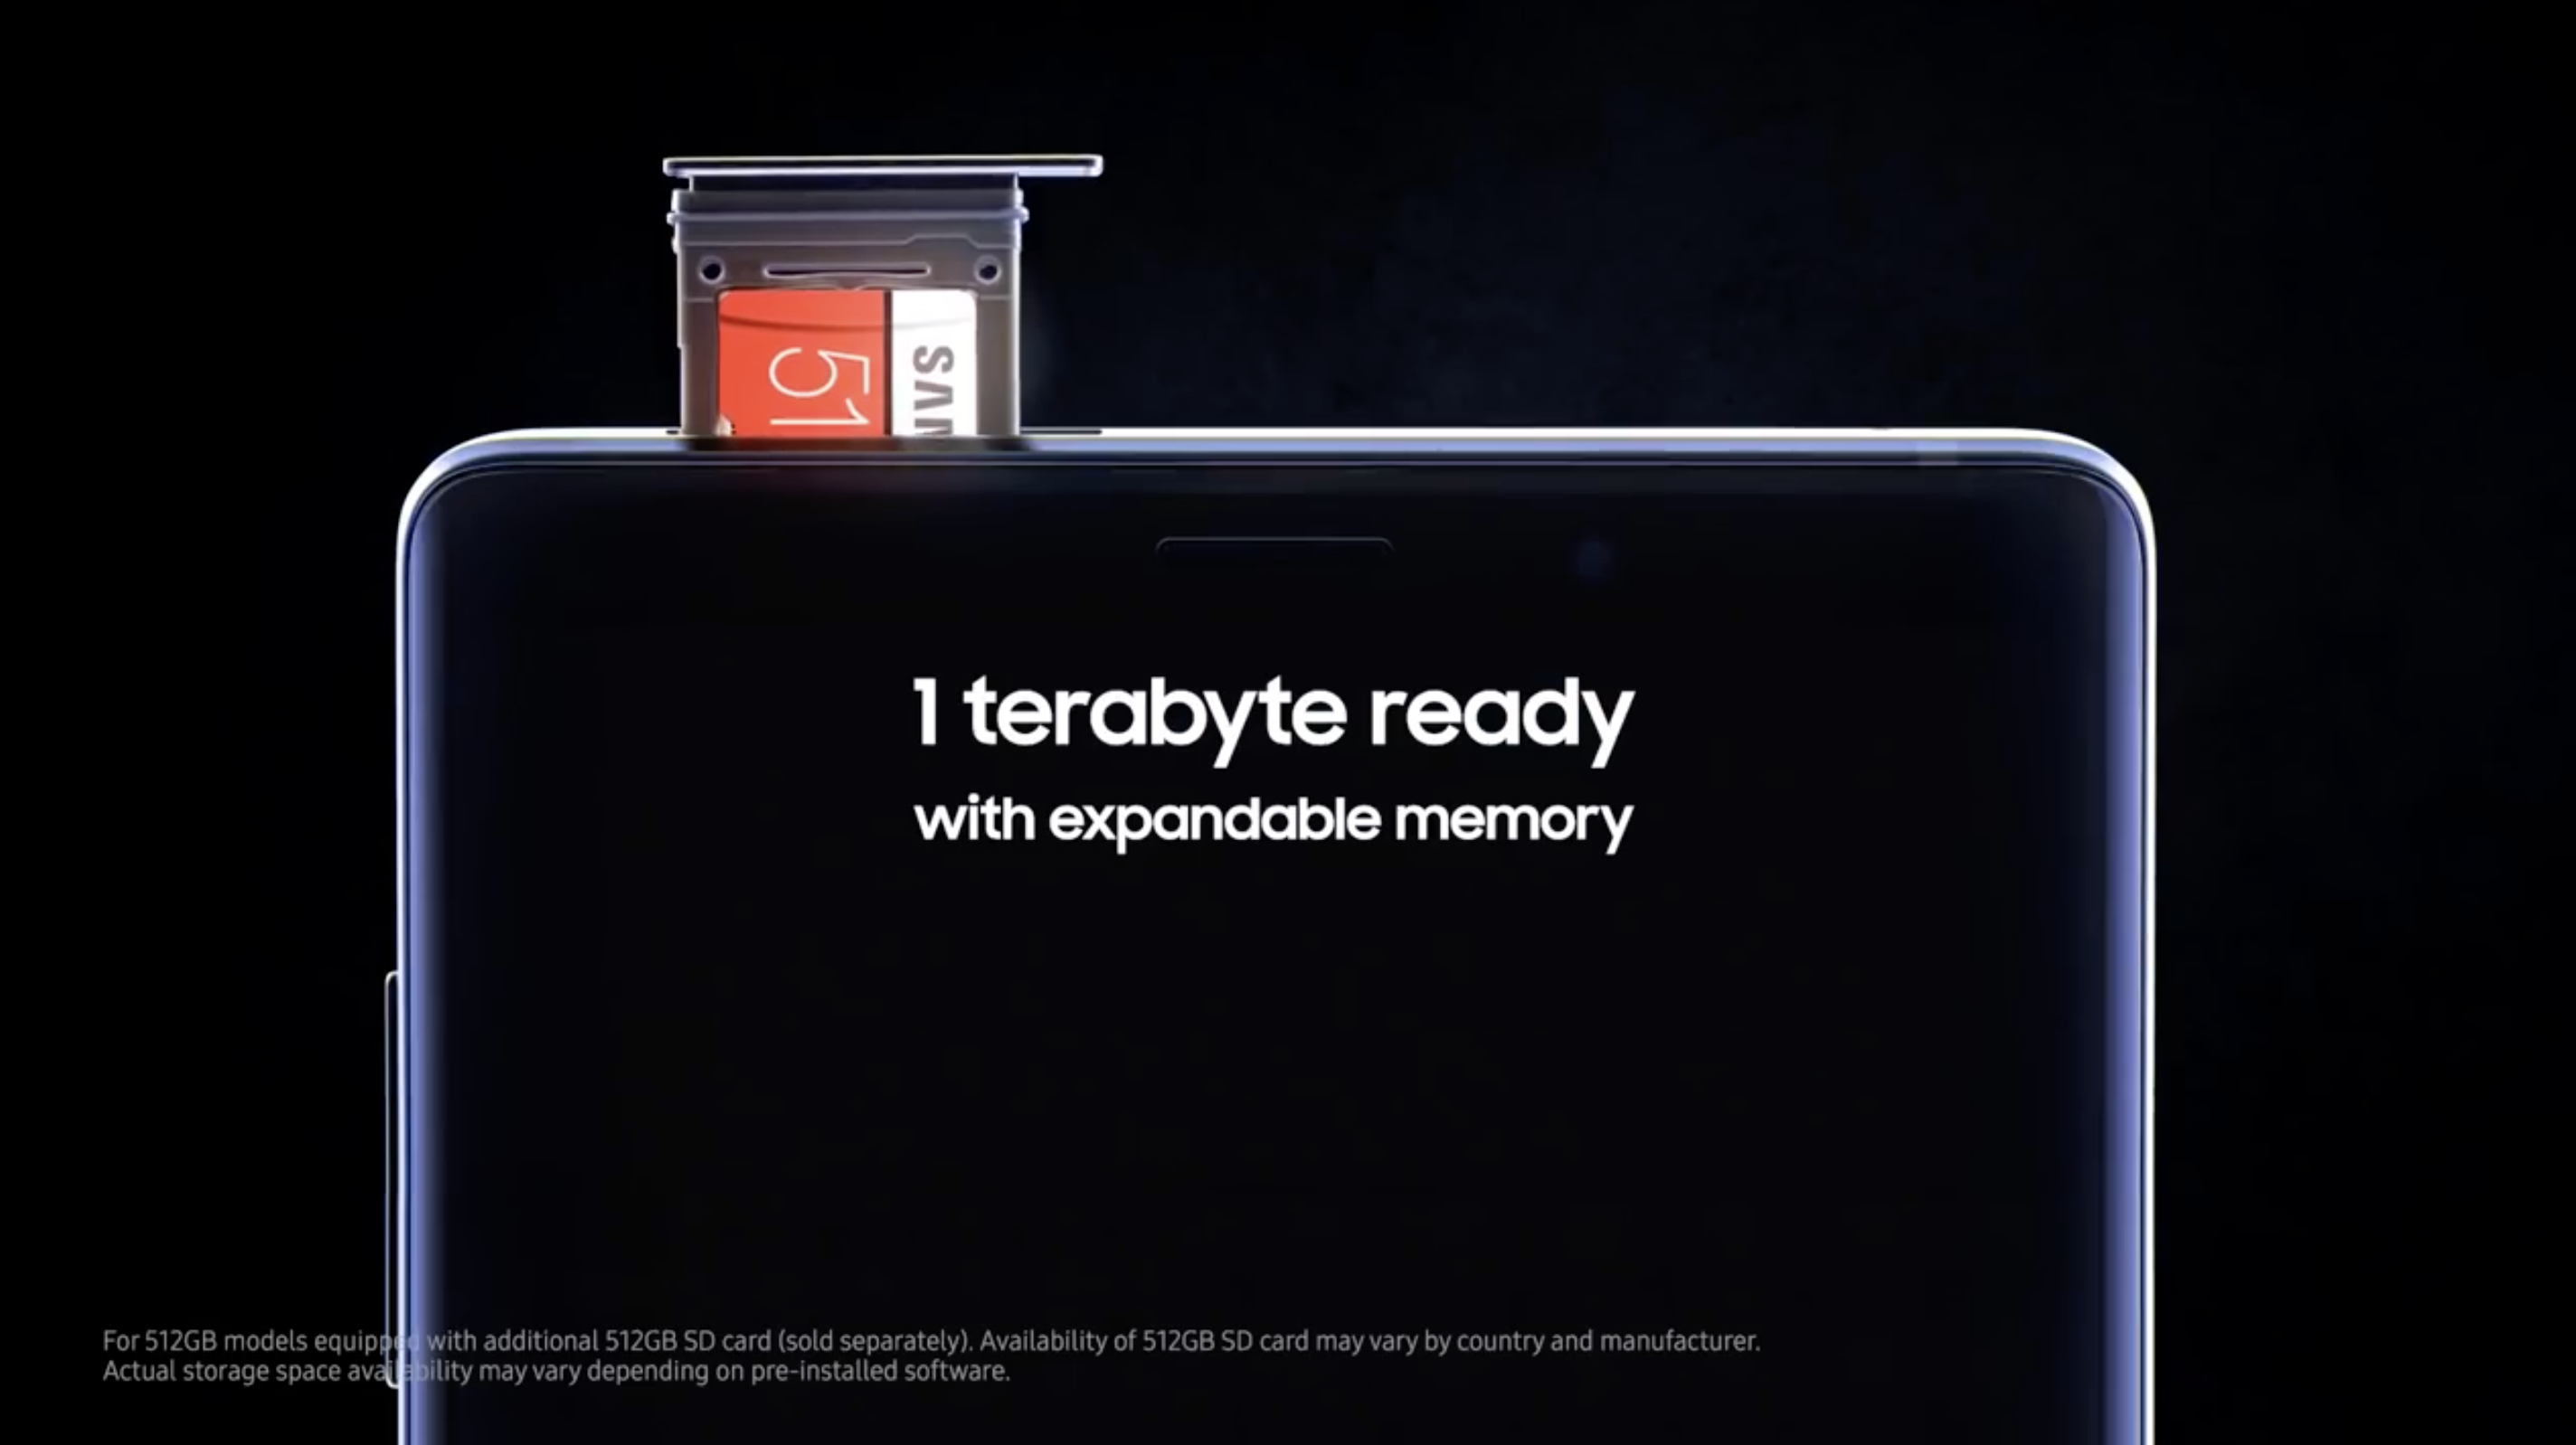 LEAK: Samsung Note 9 may have 1 terabyte of storage